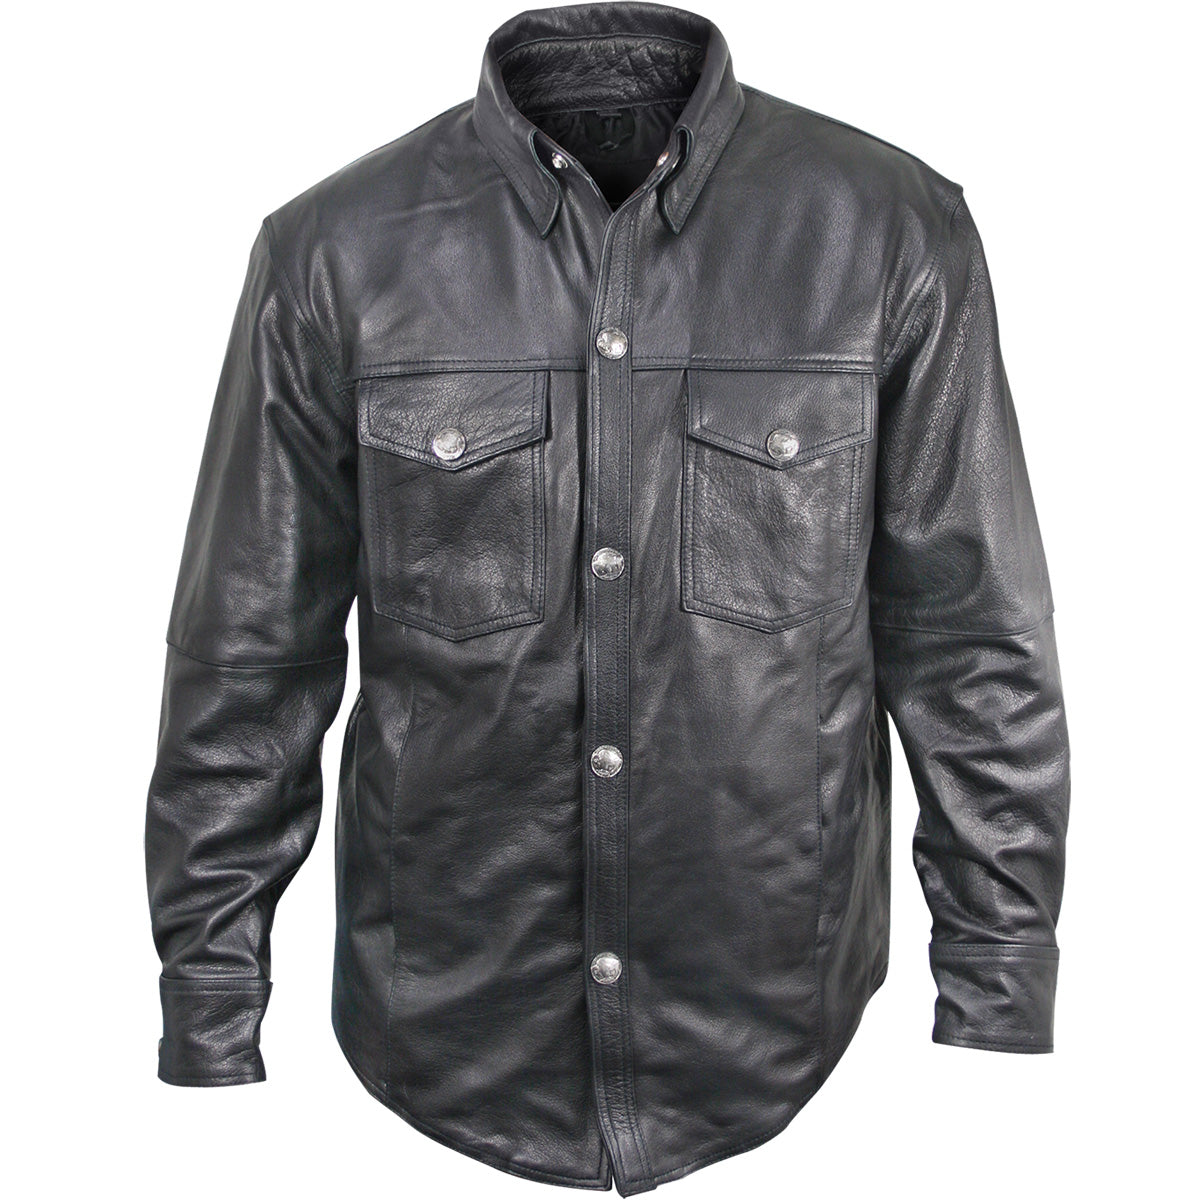 Xelement XS908B 'Nickel' Men's Black Leather Shirt with Buffalo Buttons